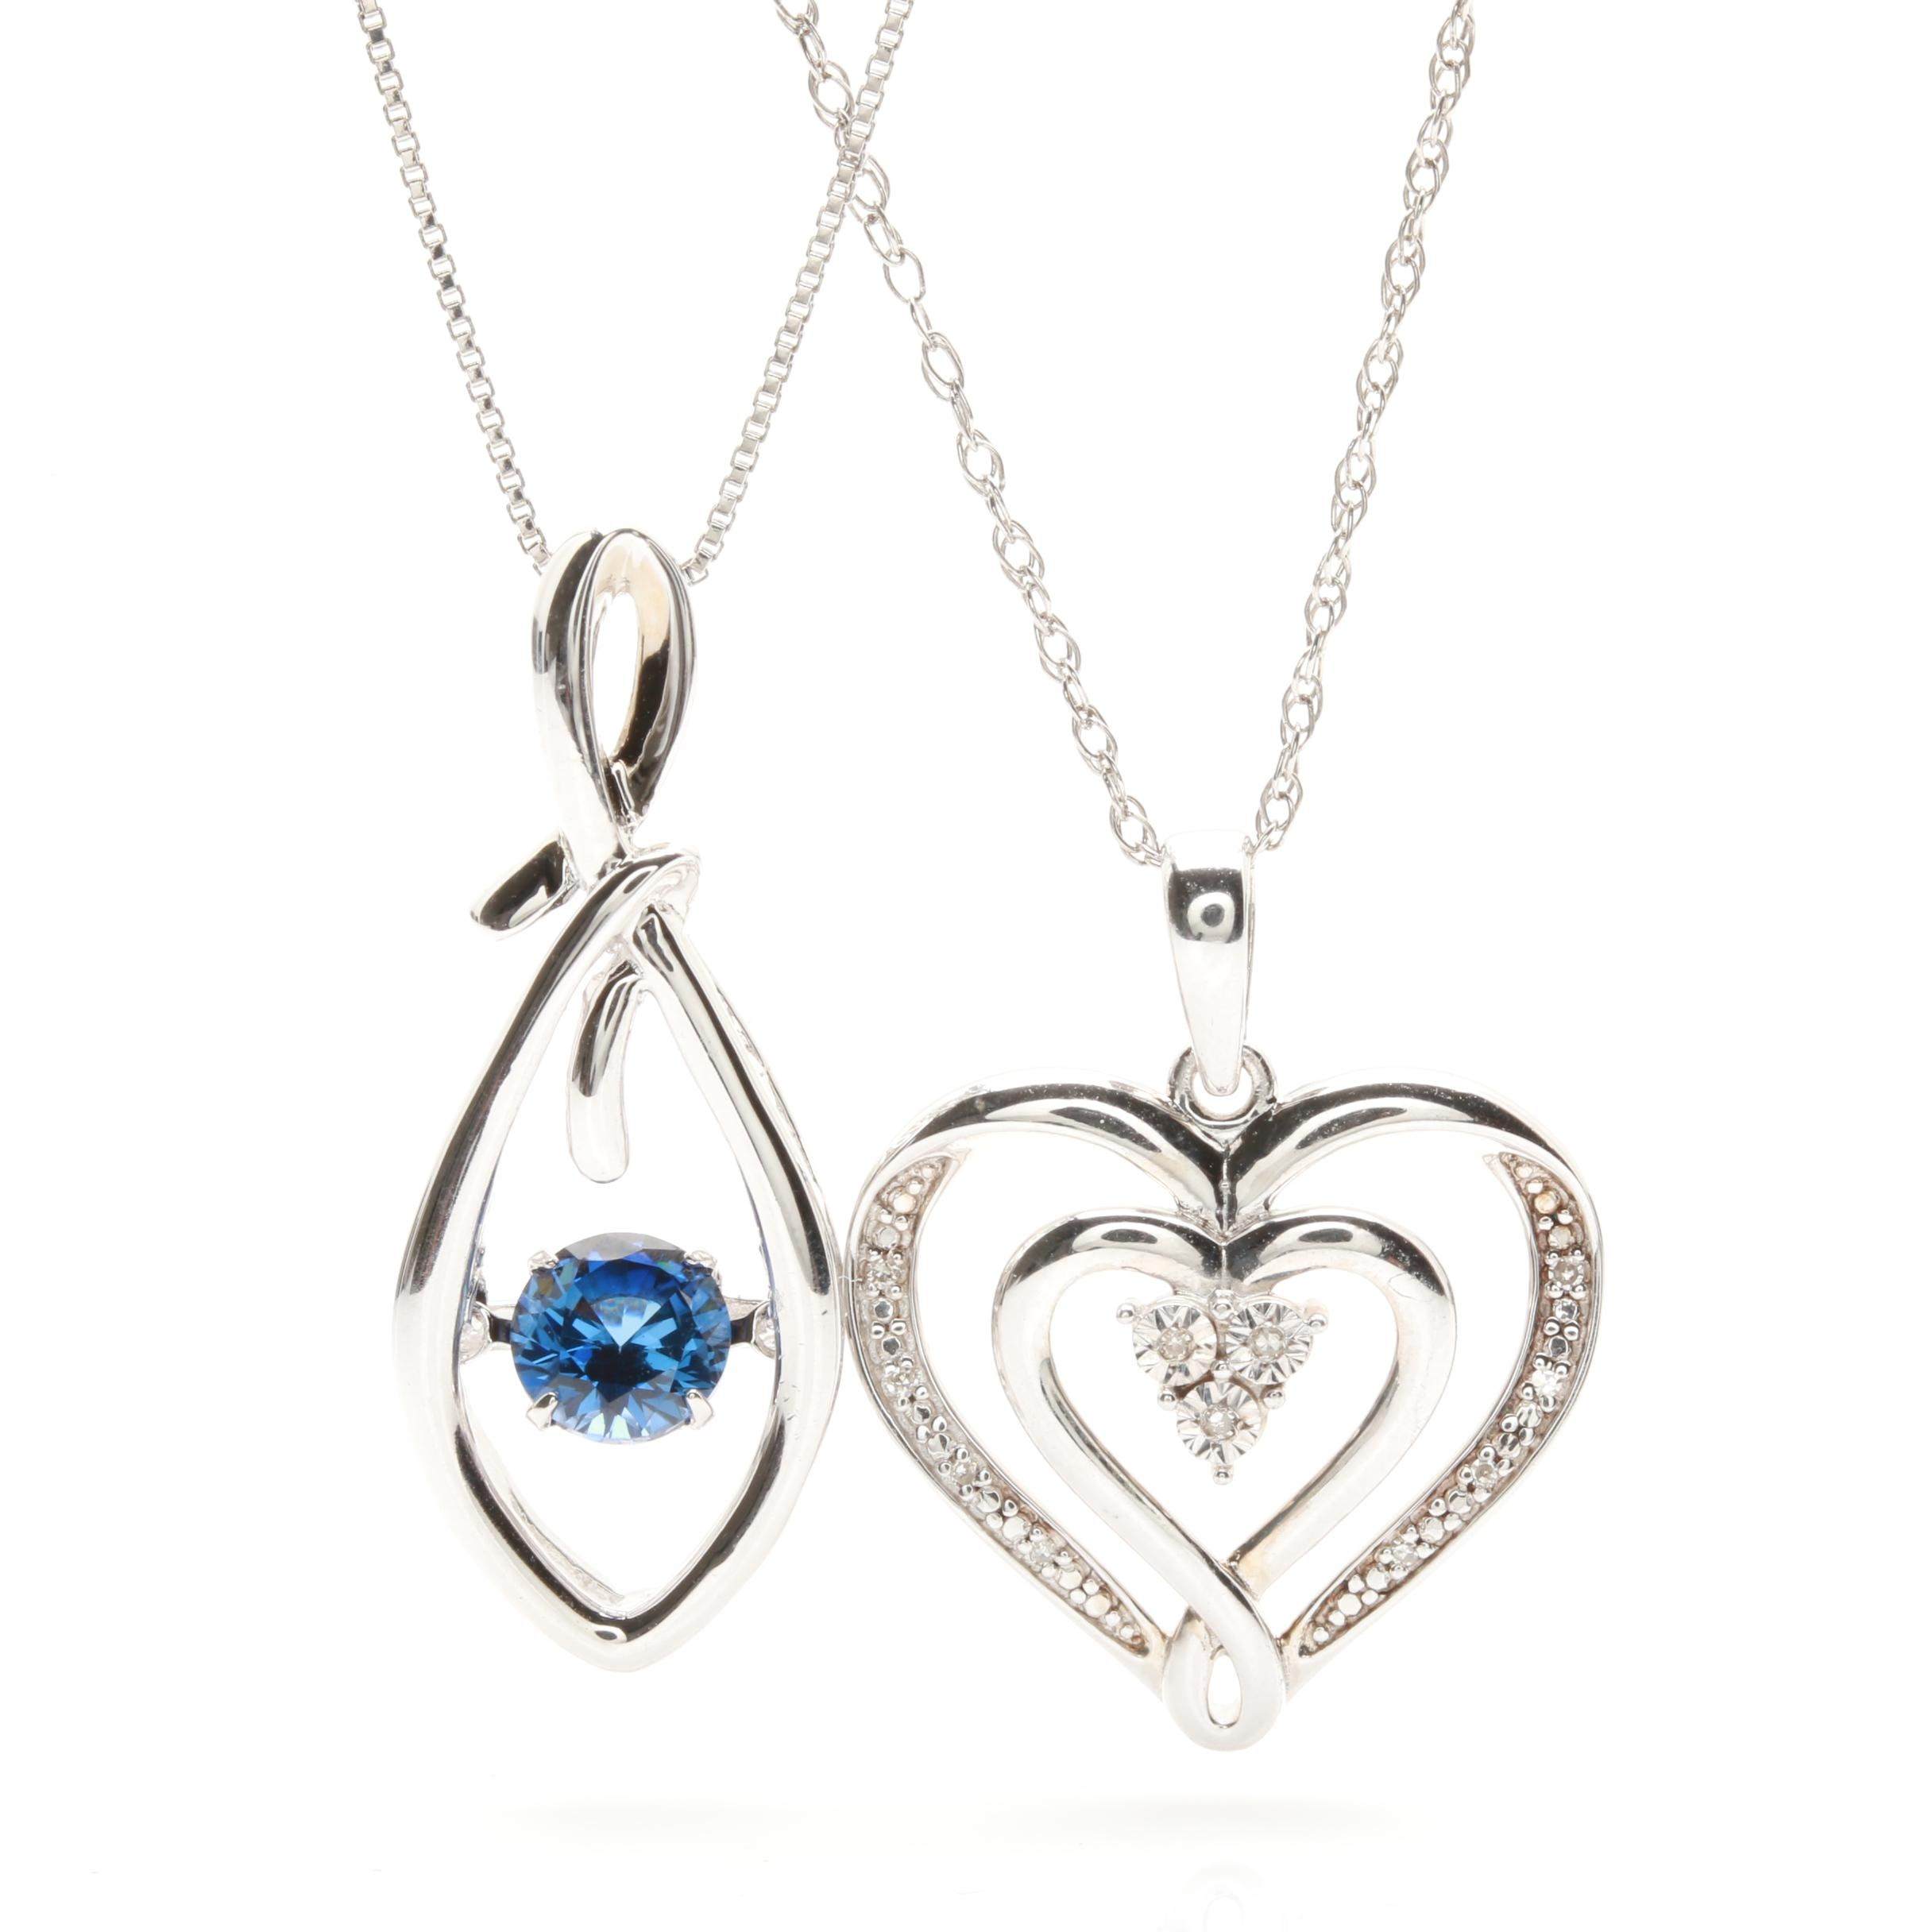 Sterling Silver Synthetic Sapphire and Diamond Necklace Selection